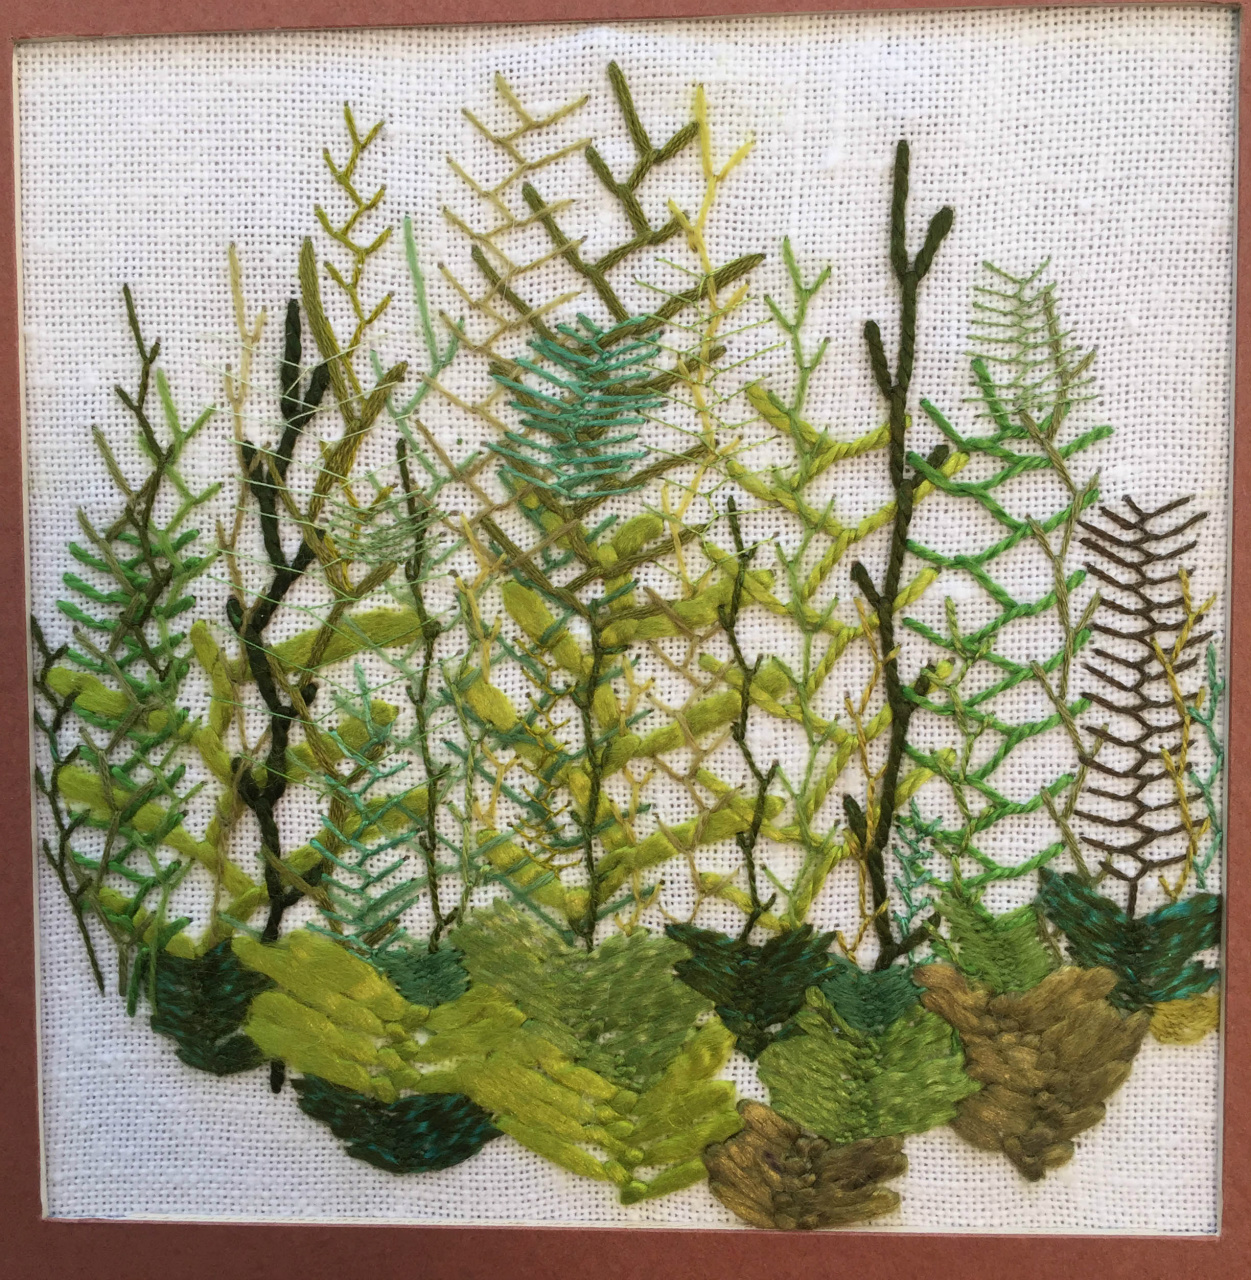 Creative Embroidery Www Textileart By Jill Com